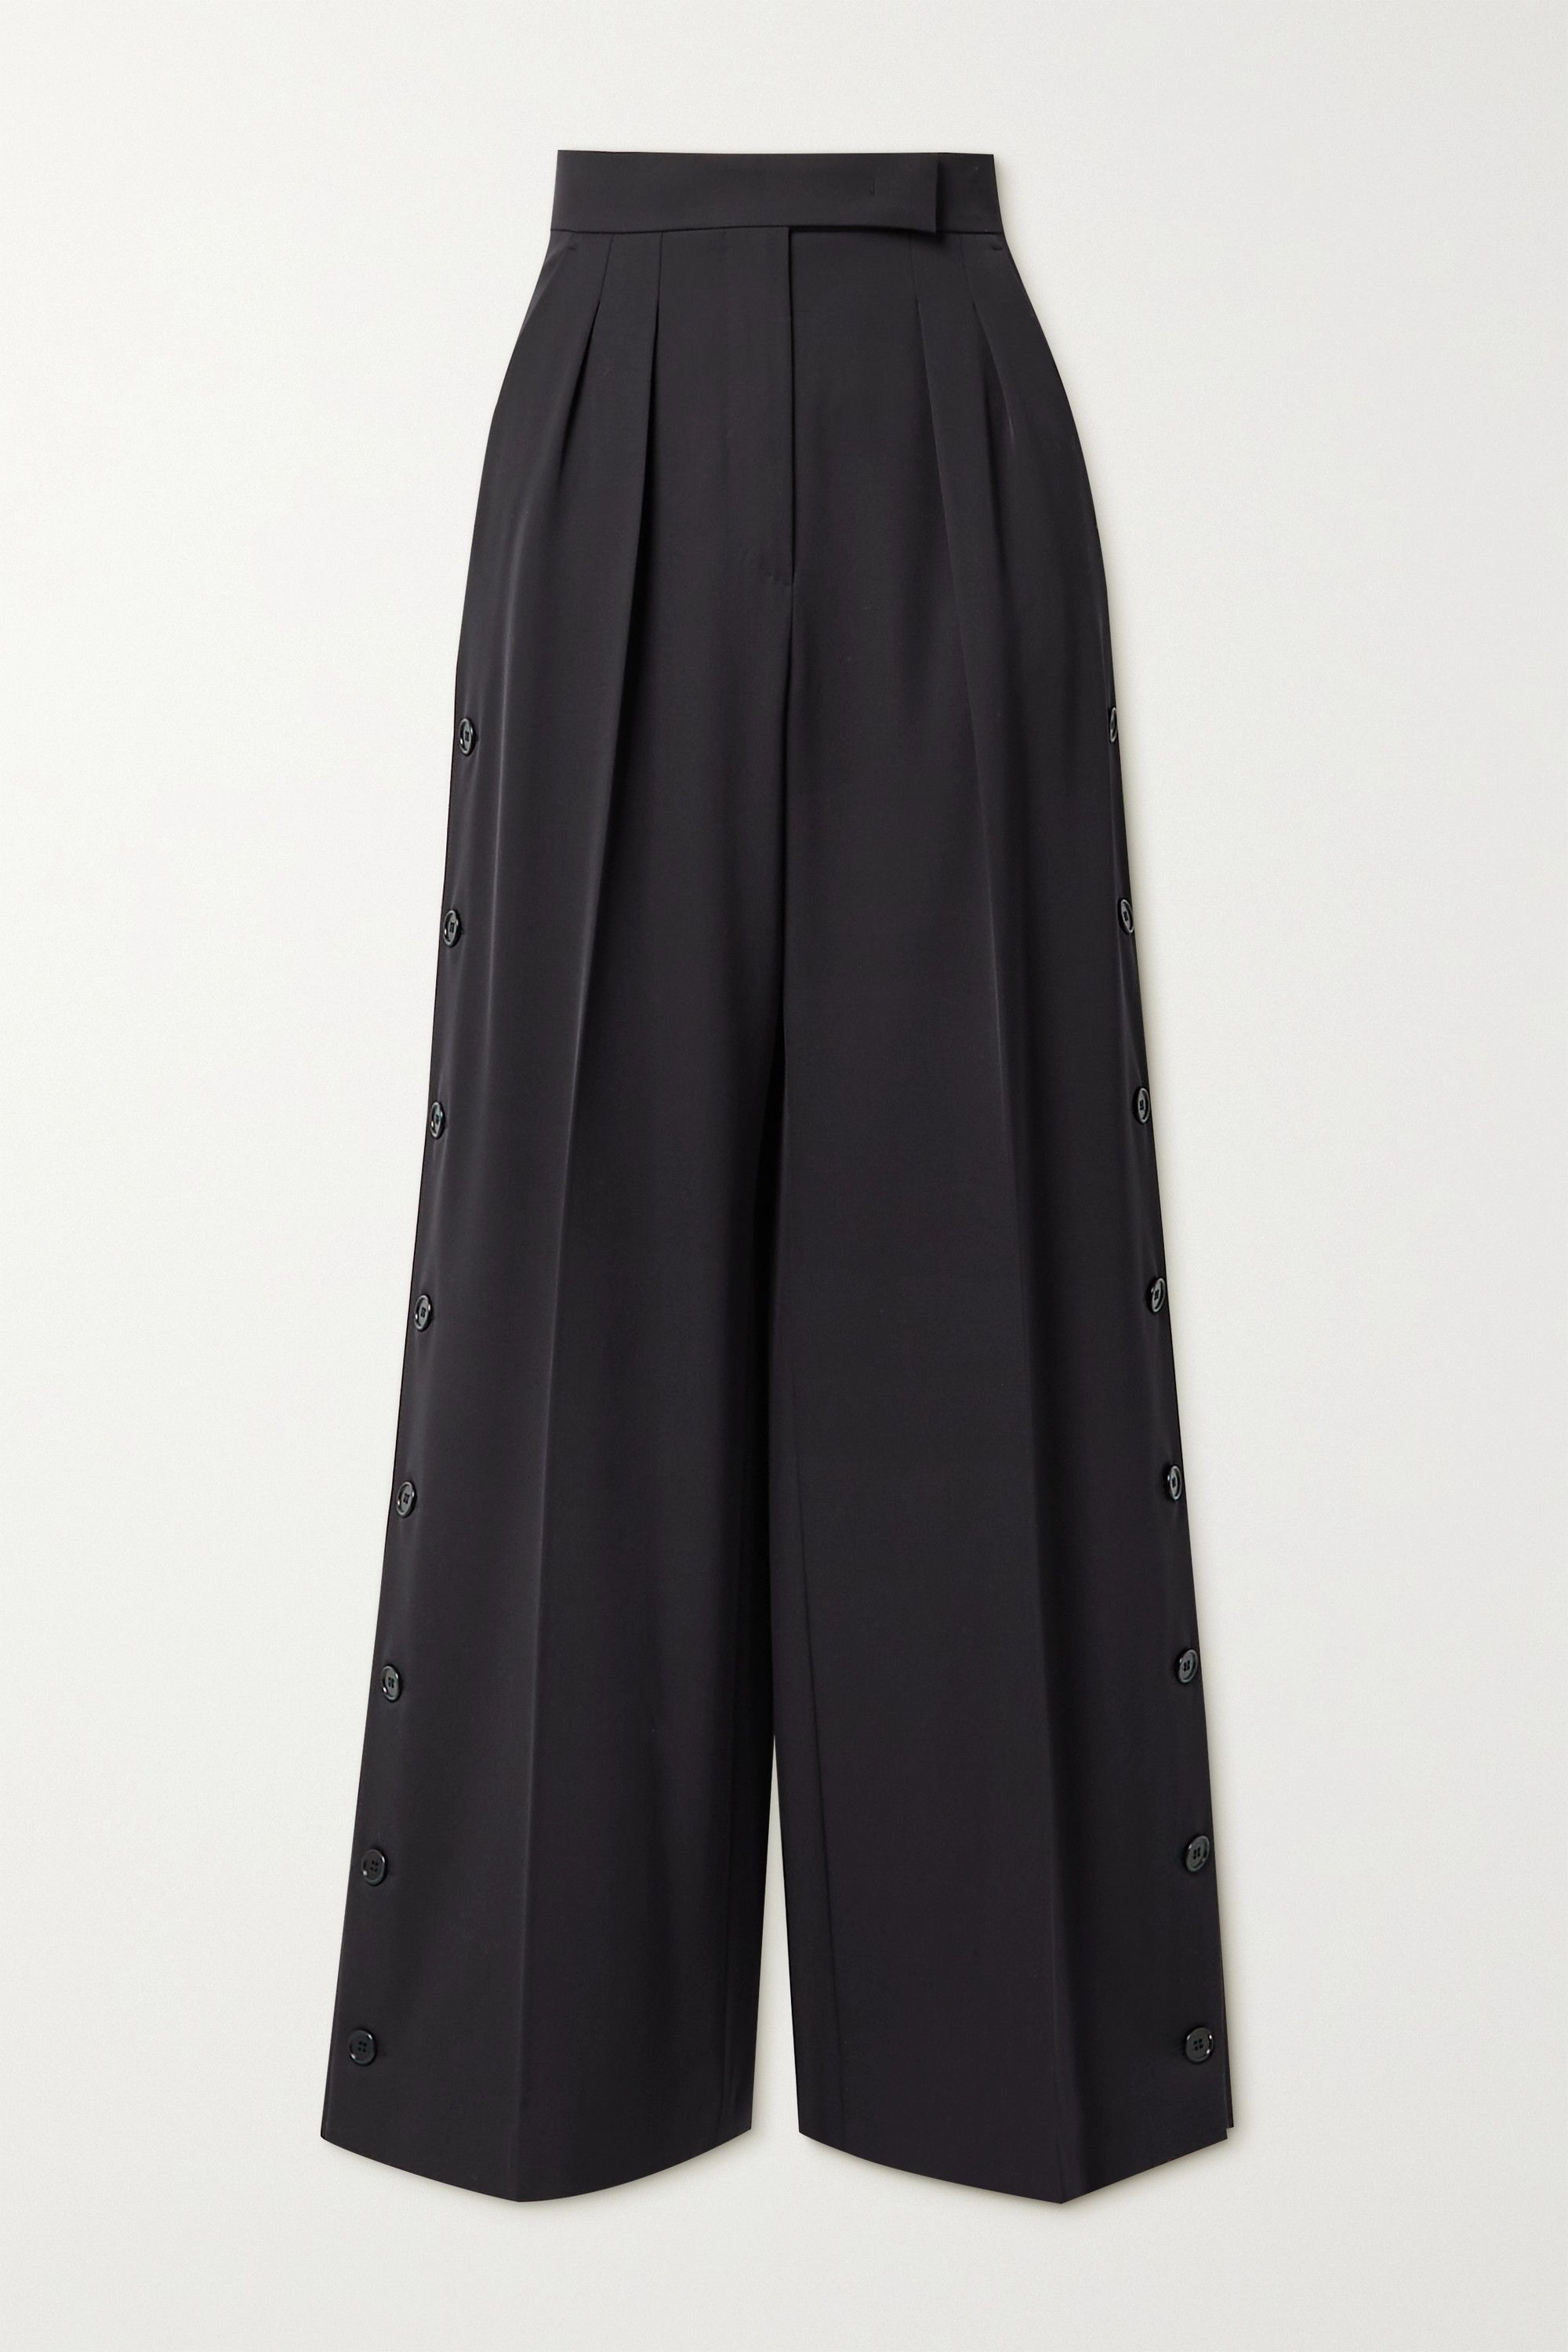 Out Of the 11,000 Items in the Net-a-Porter Sale—I Think These 24 Are the Best